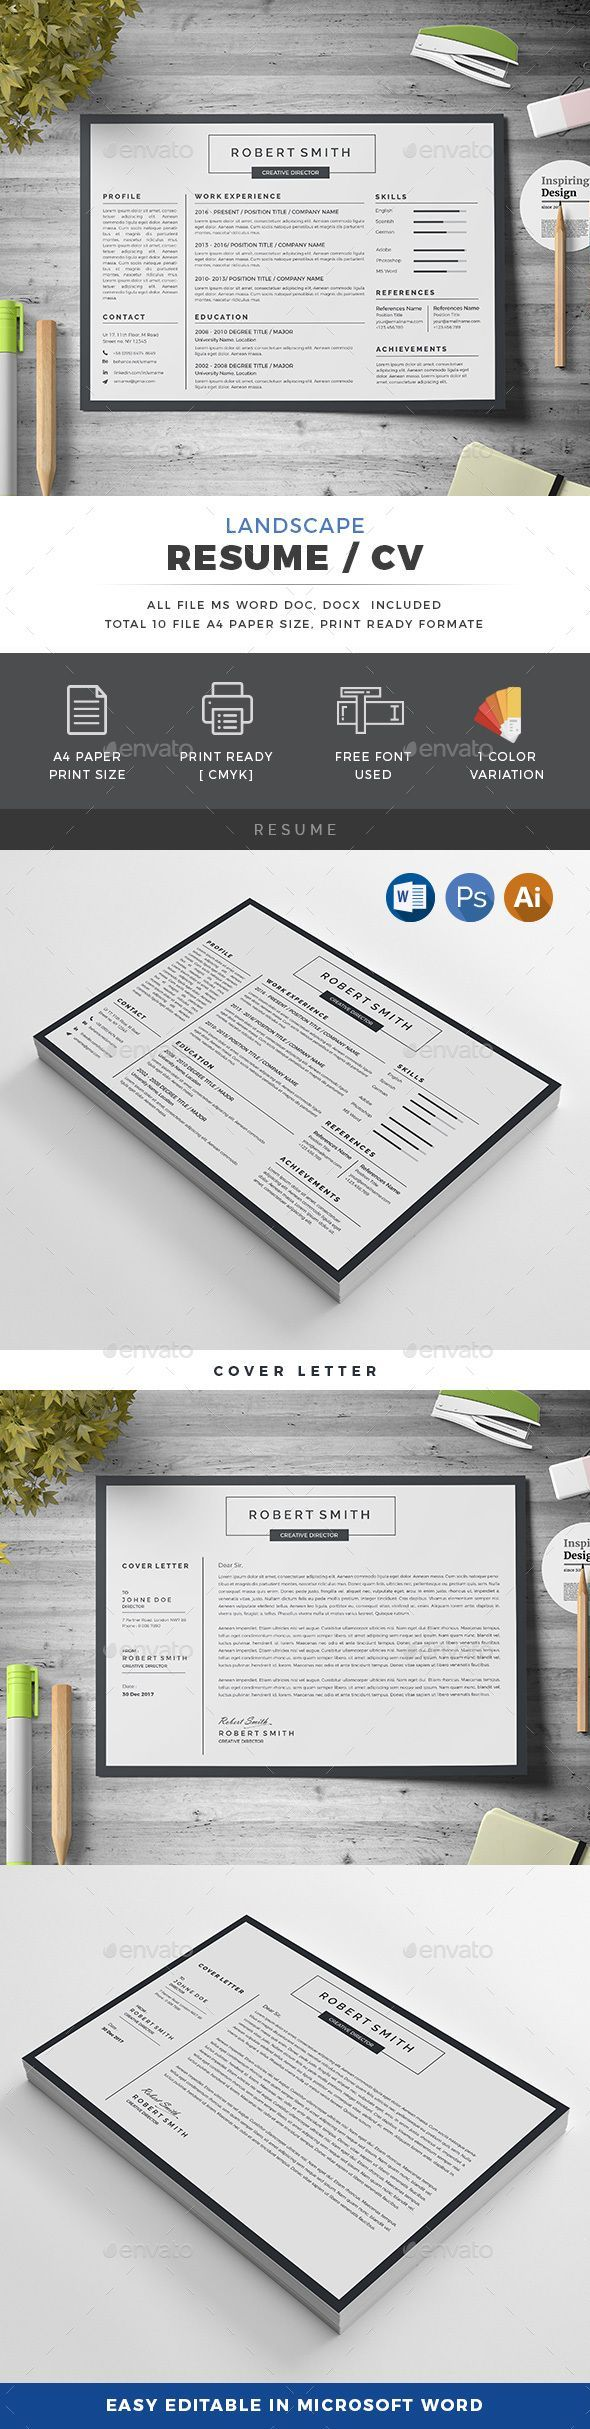 medical resume format%0A Landscape  Resume   Resumes Stationery Download here  https   graphicriver